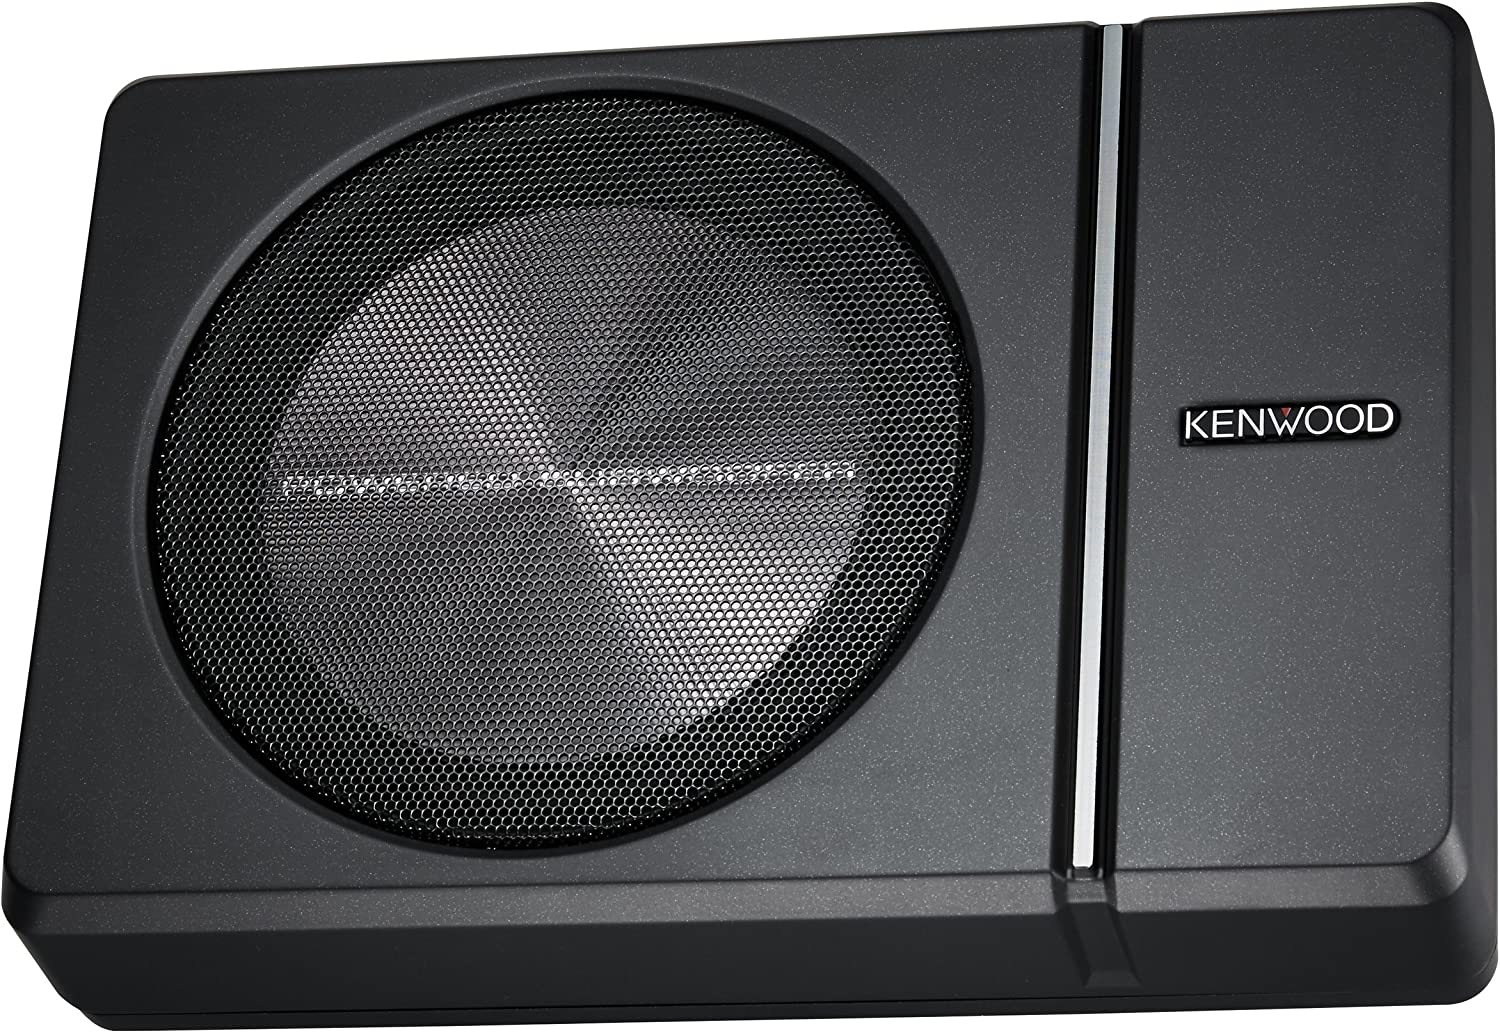 "Kenwood KSC-PSW8 250W Max (150W RMS) Single 8"" Under Seat Powered Subwoofer Enclosure W/Remote Control"